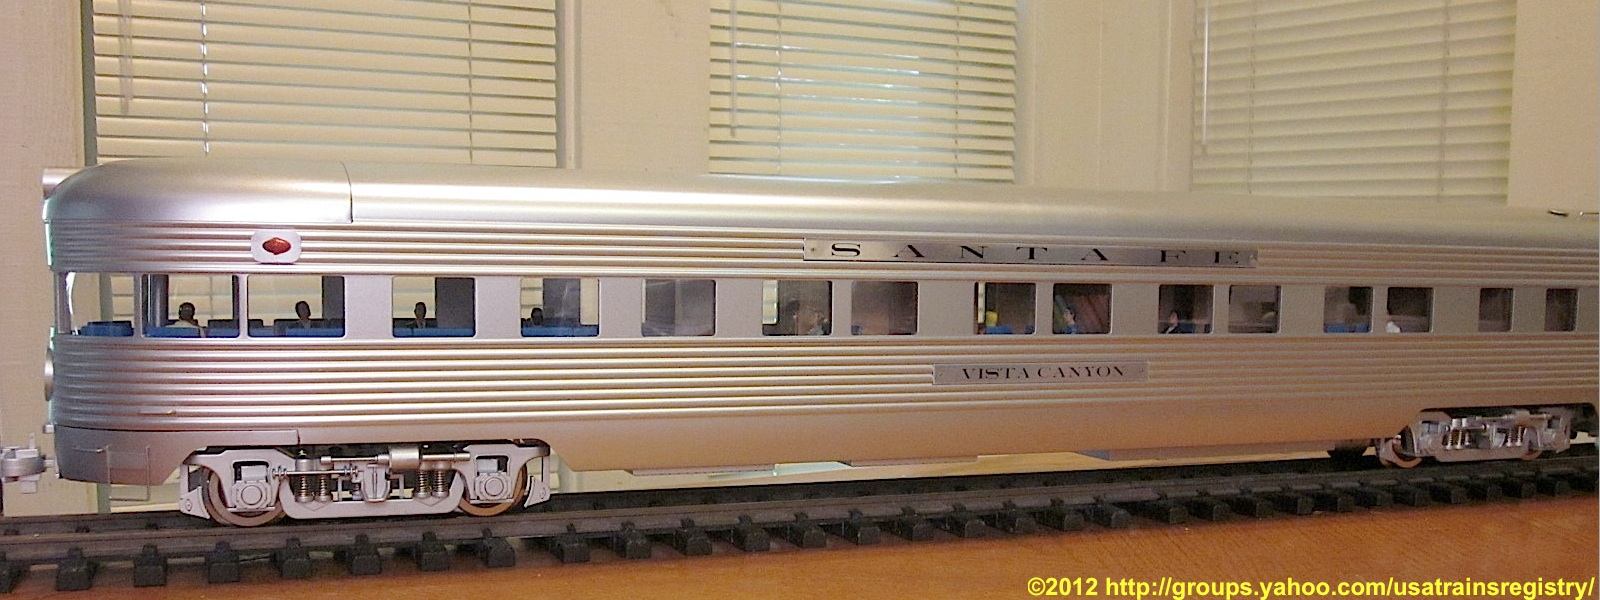 Santa Fe Super Chief - Aussichtswagen (Observation car) - Vista Canyon